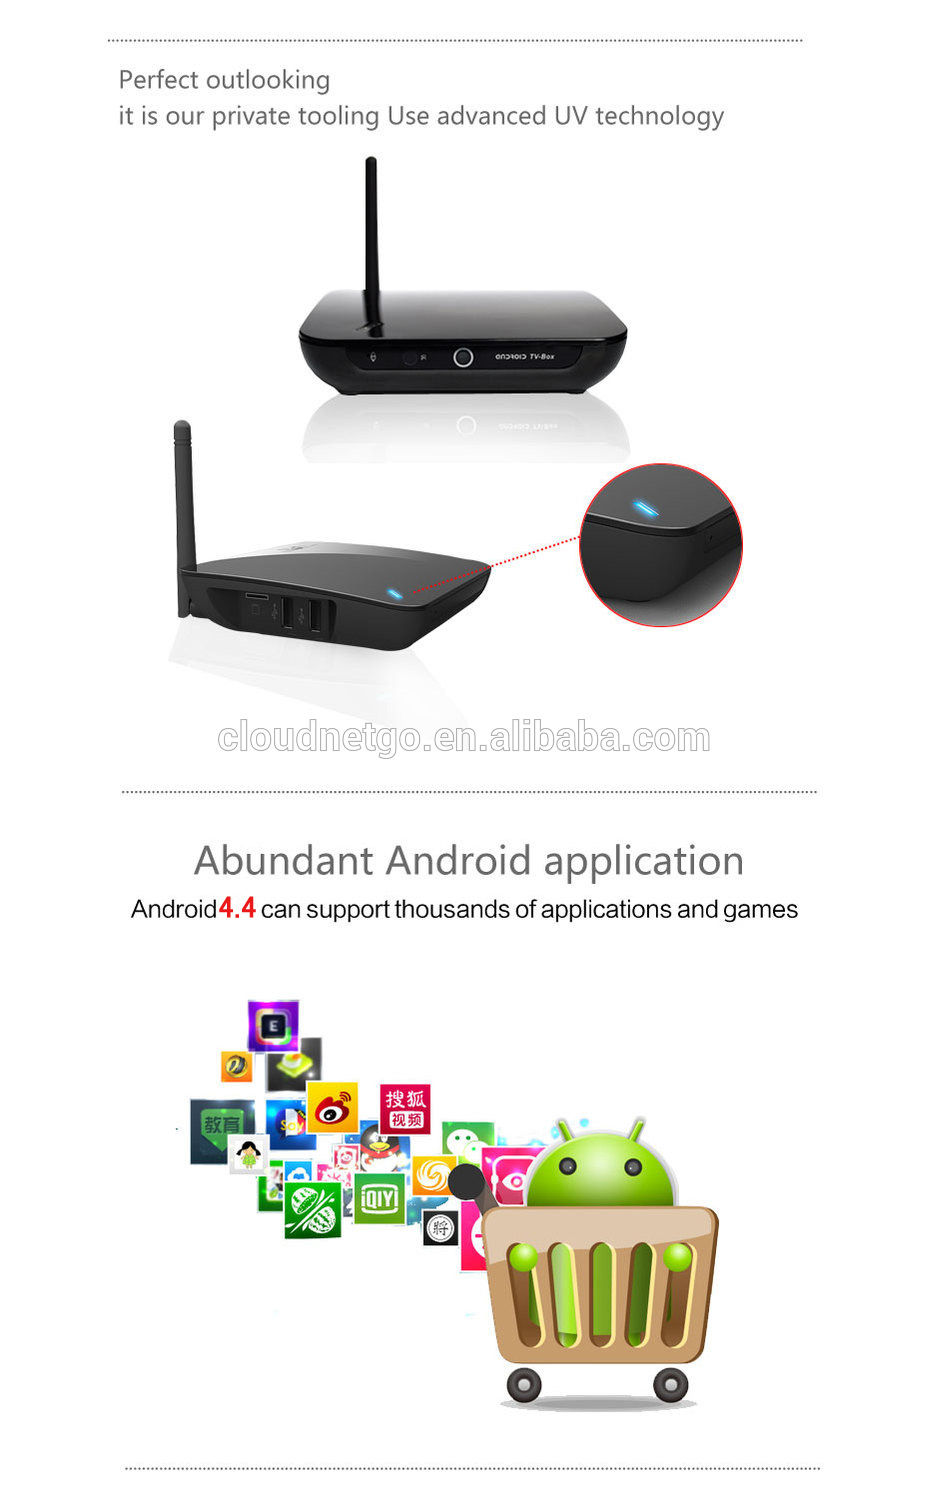 legoo android tv box cs968/cr11s cloudnetgo XBMC media player full hd 1080p porn video android tv box google media player